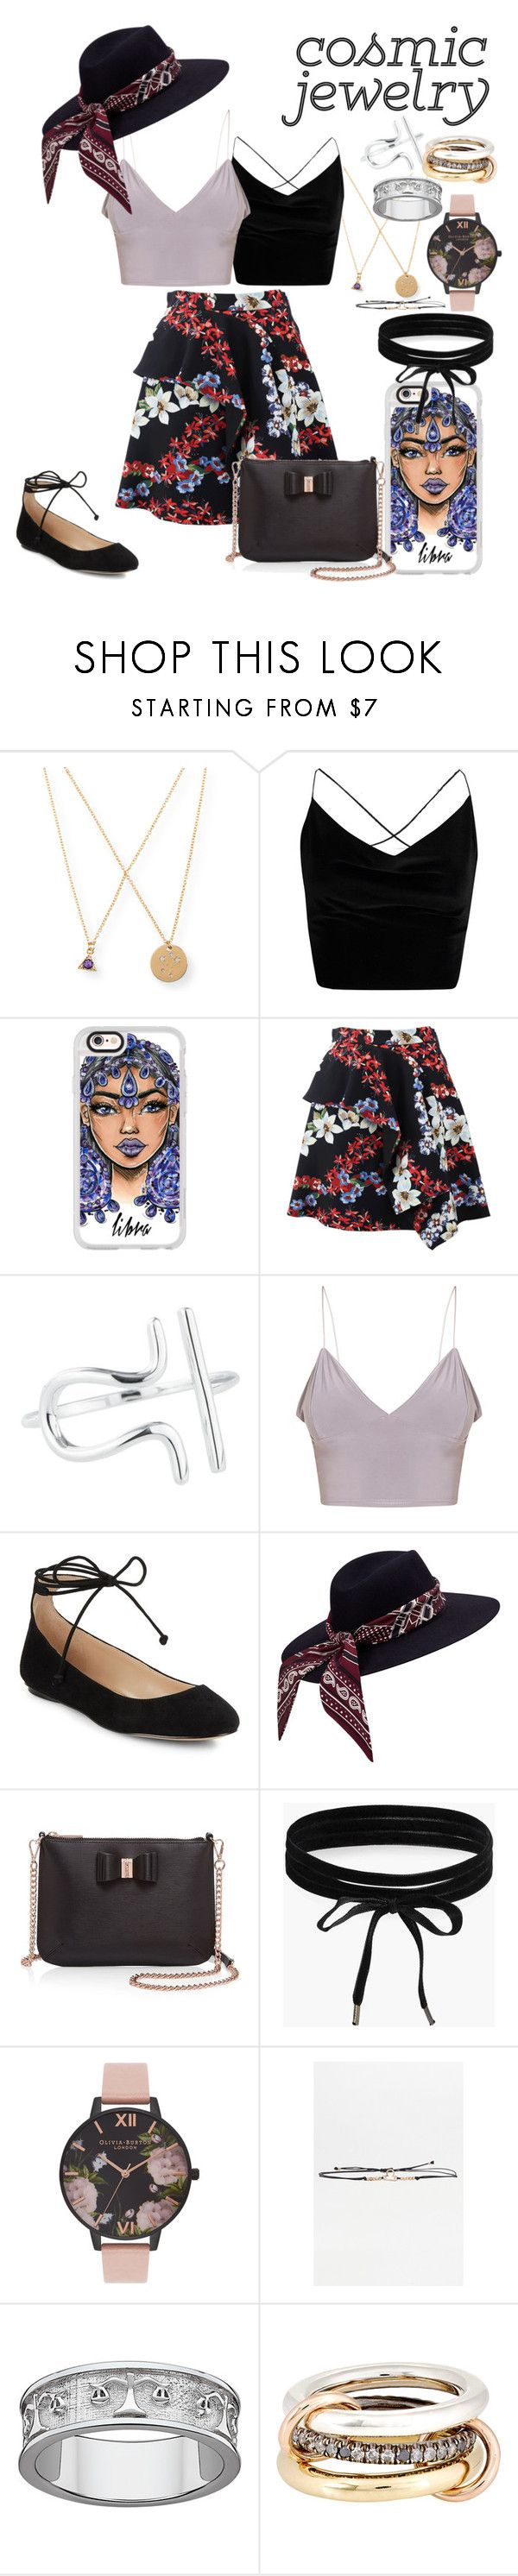 """Constellations (Libra)"" by msmariesales ❤ liked on Polyvore featuring Aéropostale, Boohoo, Casetify, MSGM, Rock 'N Rose, Karl Lagerfeld, Ted Baker, Olivia Burton and SPINELLI KILCOLLIN"